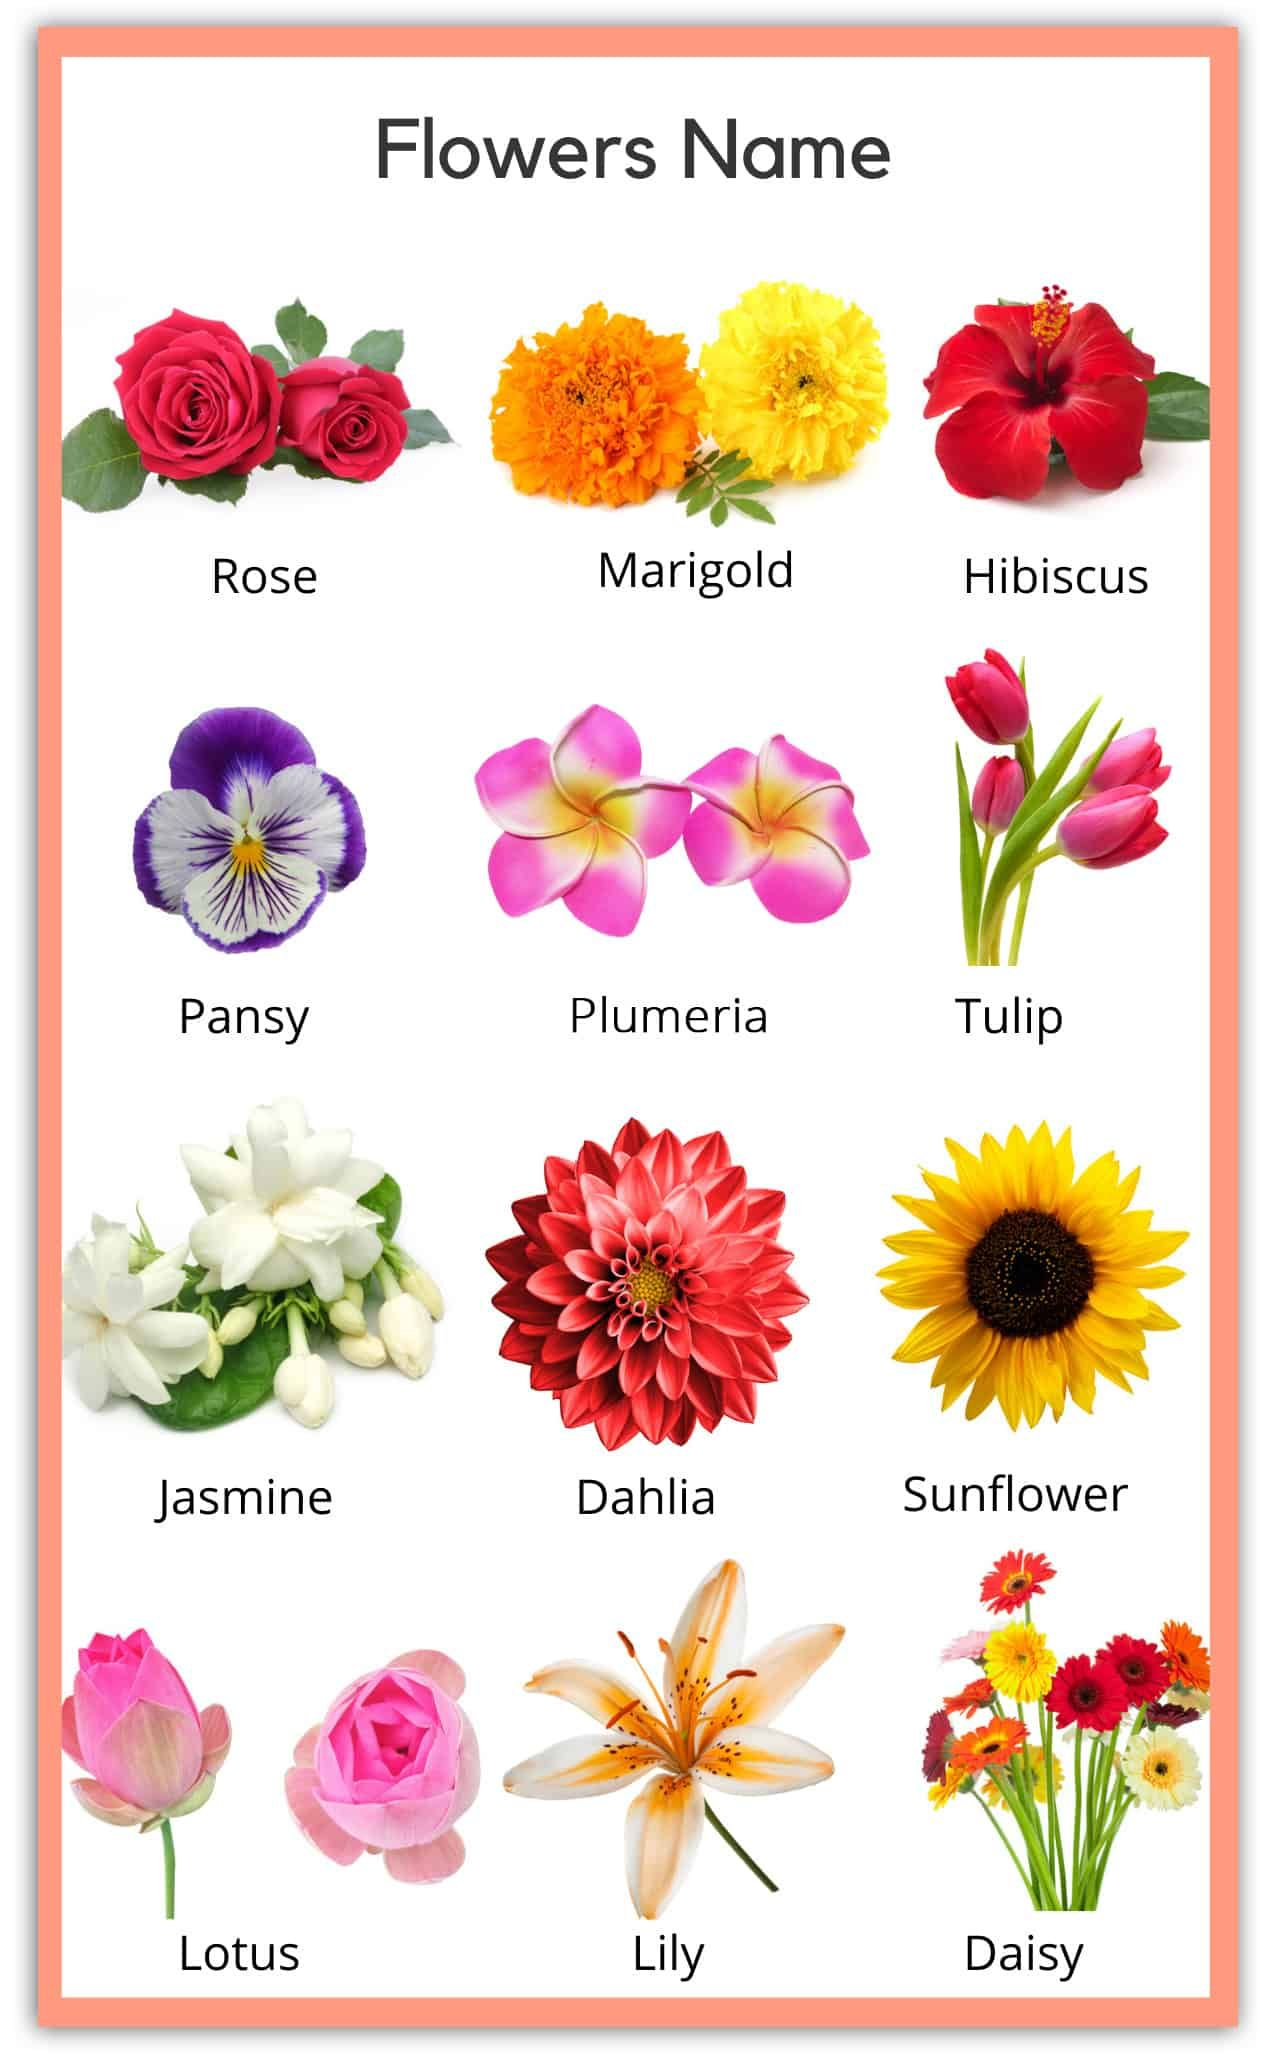 Flowers Name in English Pictures in 2020 Flower chart